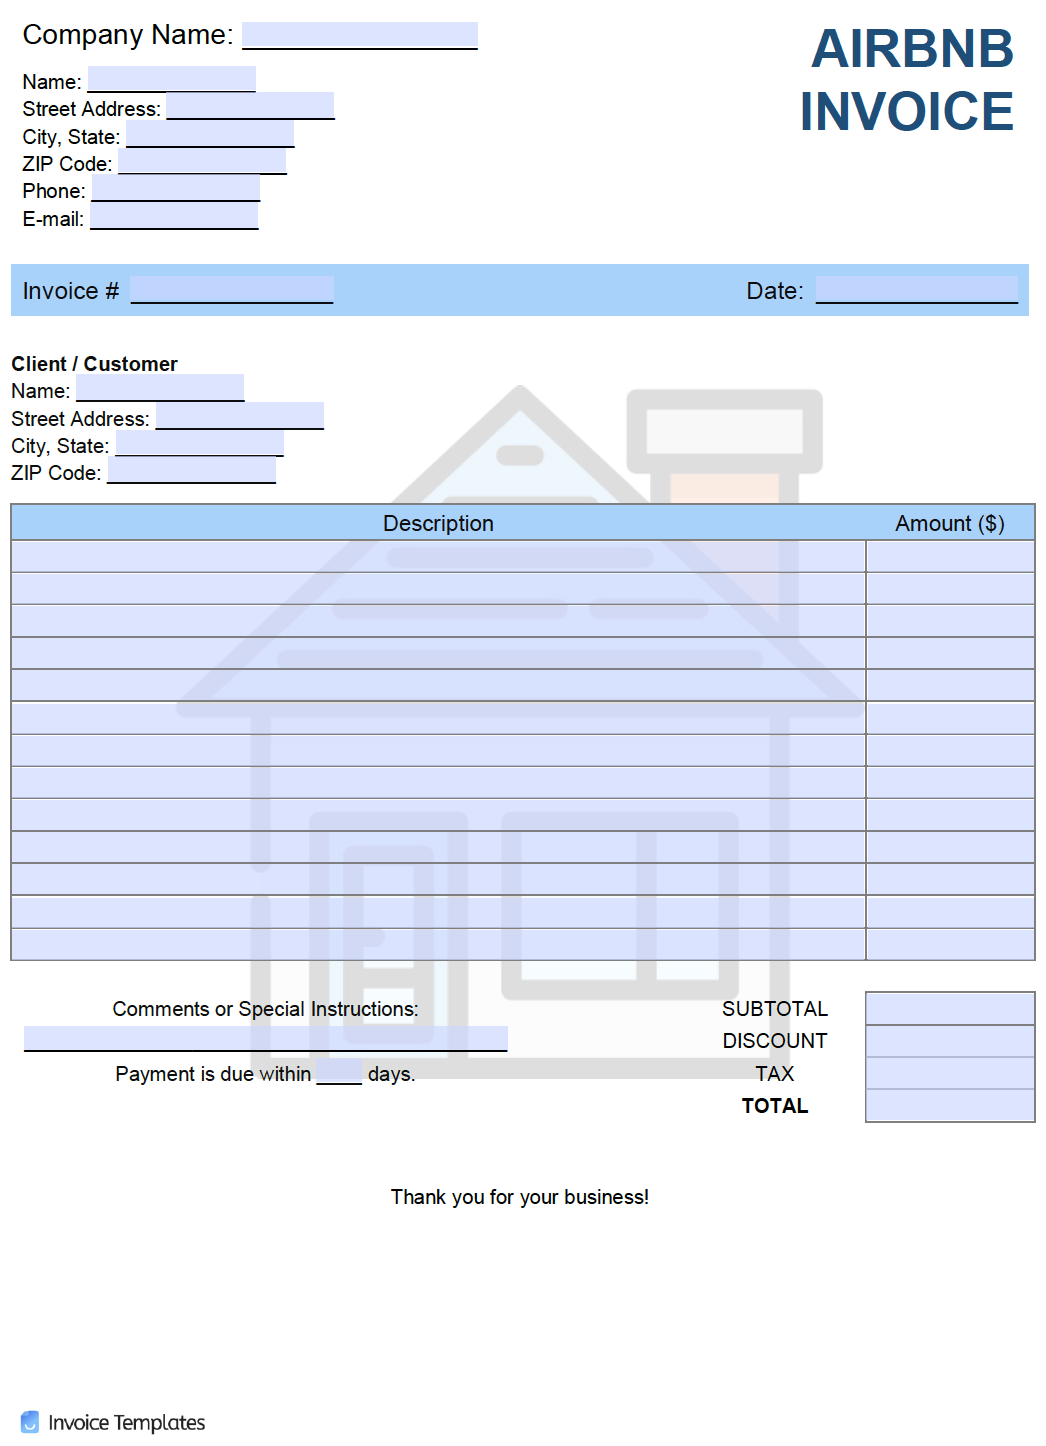 Free Airbnb Invoice Template Pdf Word Excel